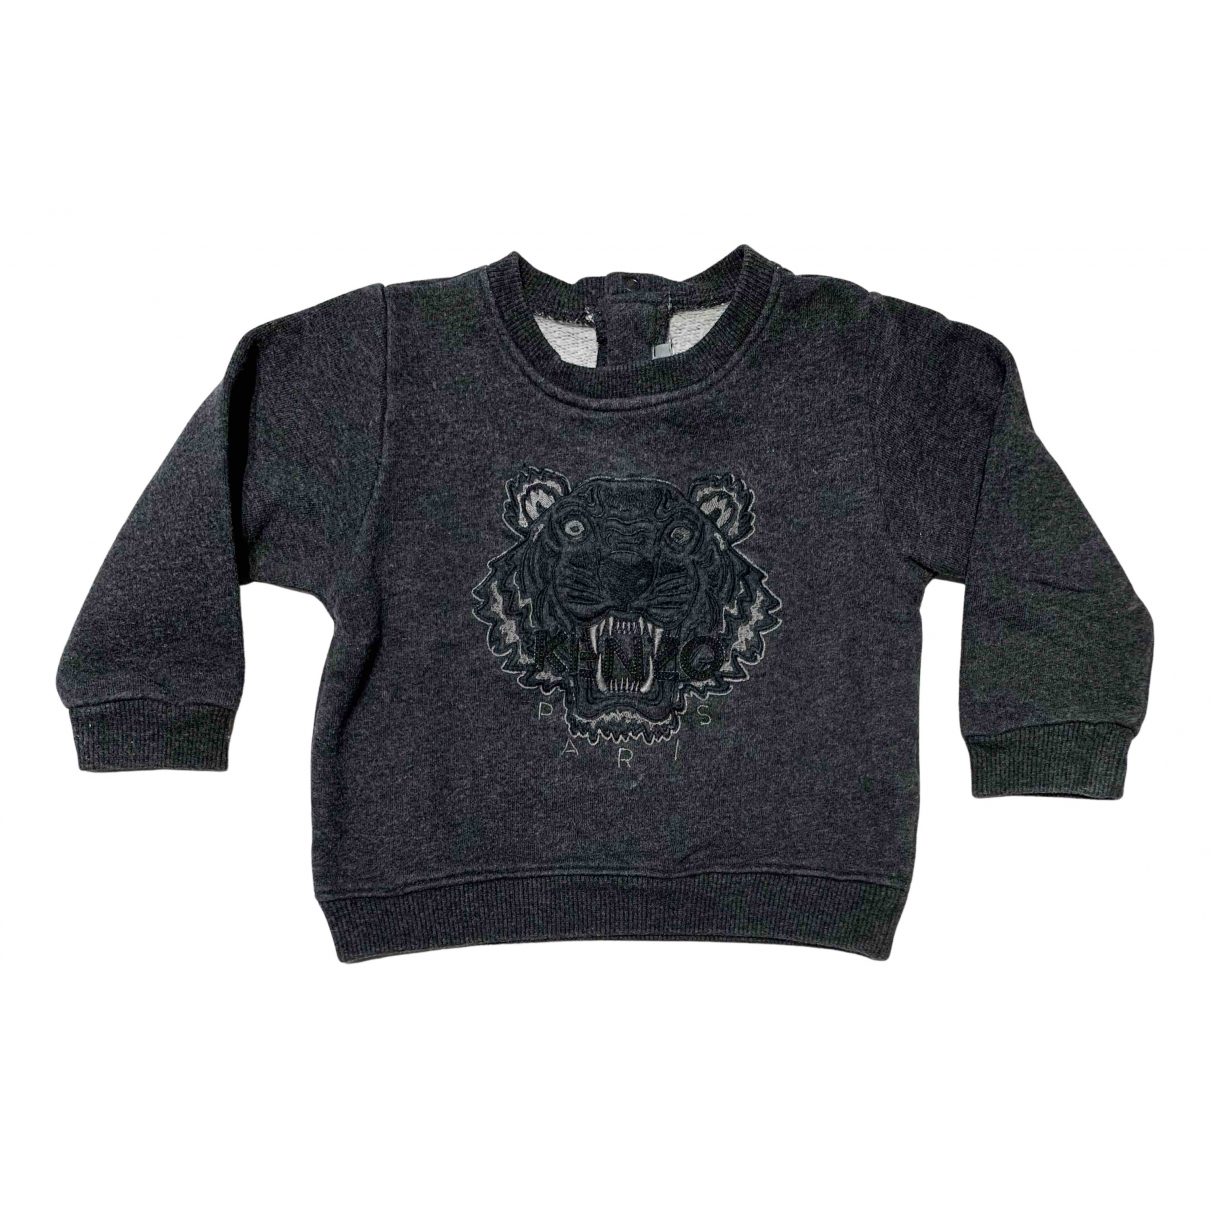 Kenzo N Anthracite Cotton Knitwear for Kids 18 months - up to 81cm FR